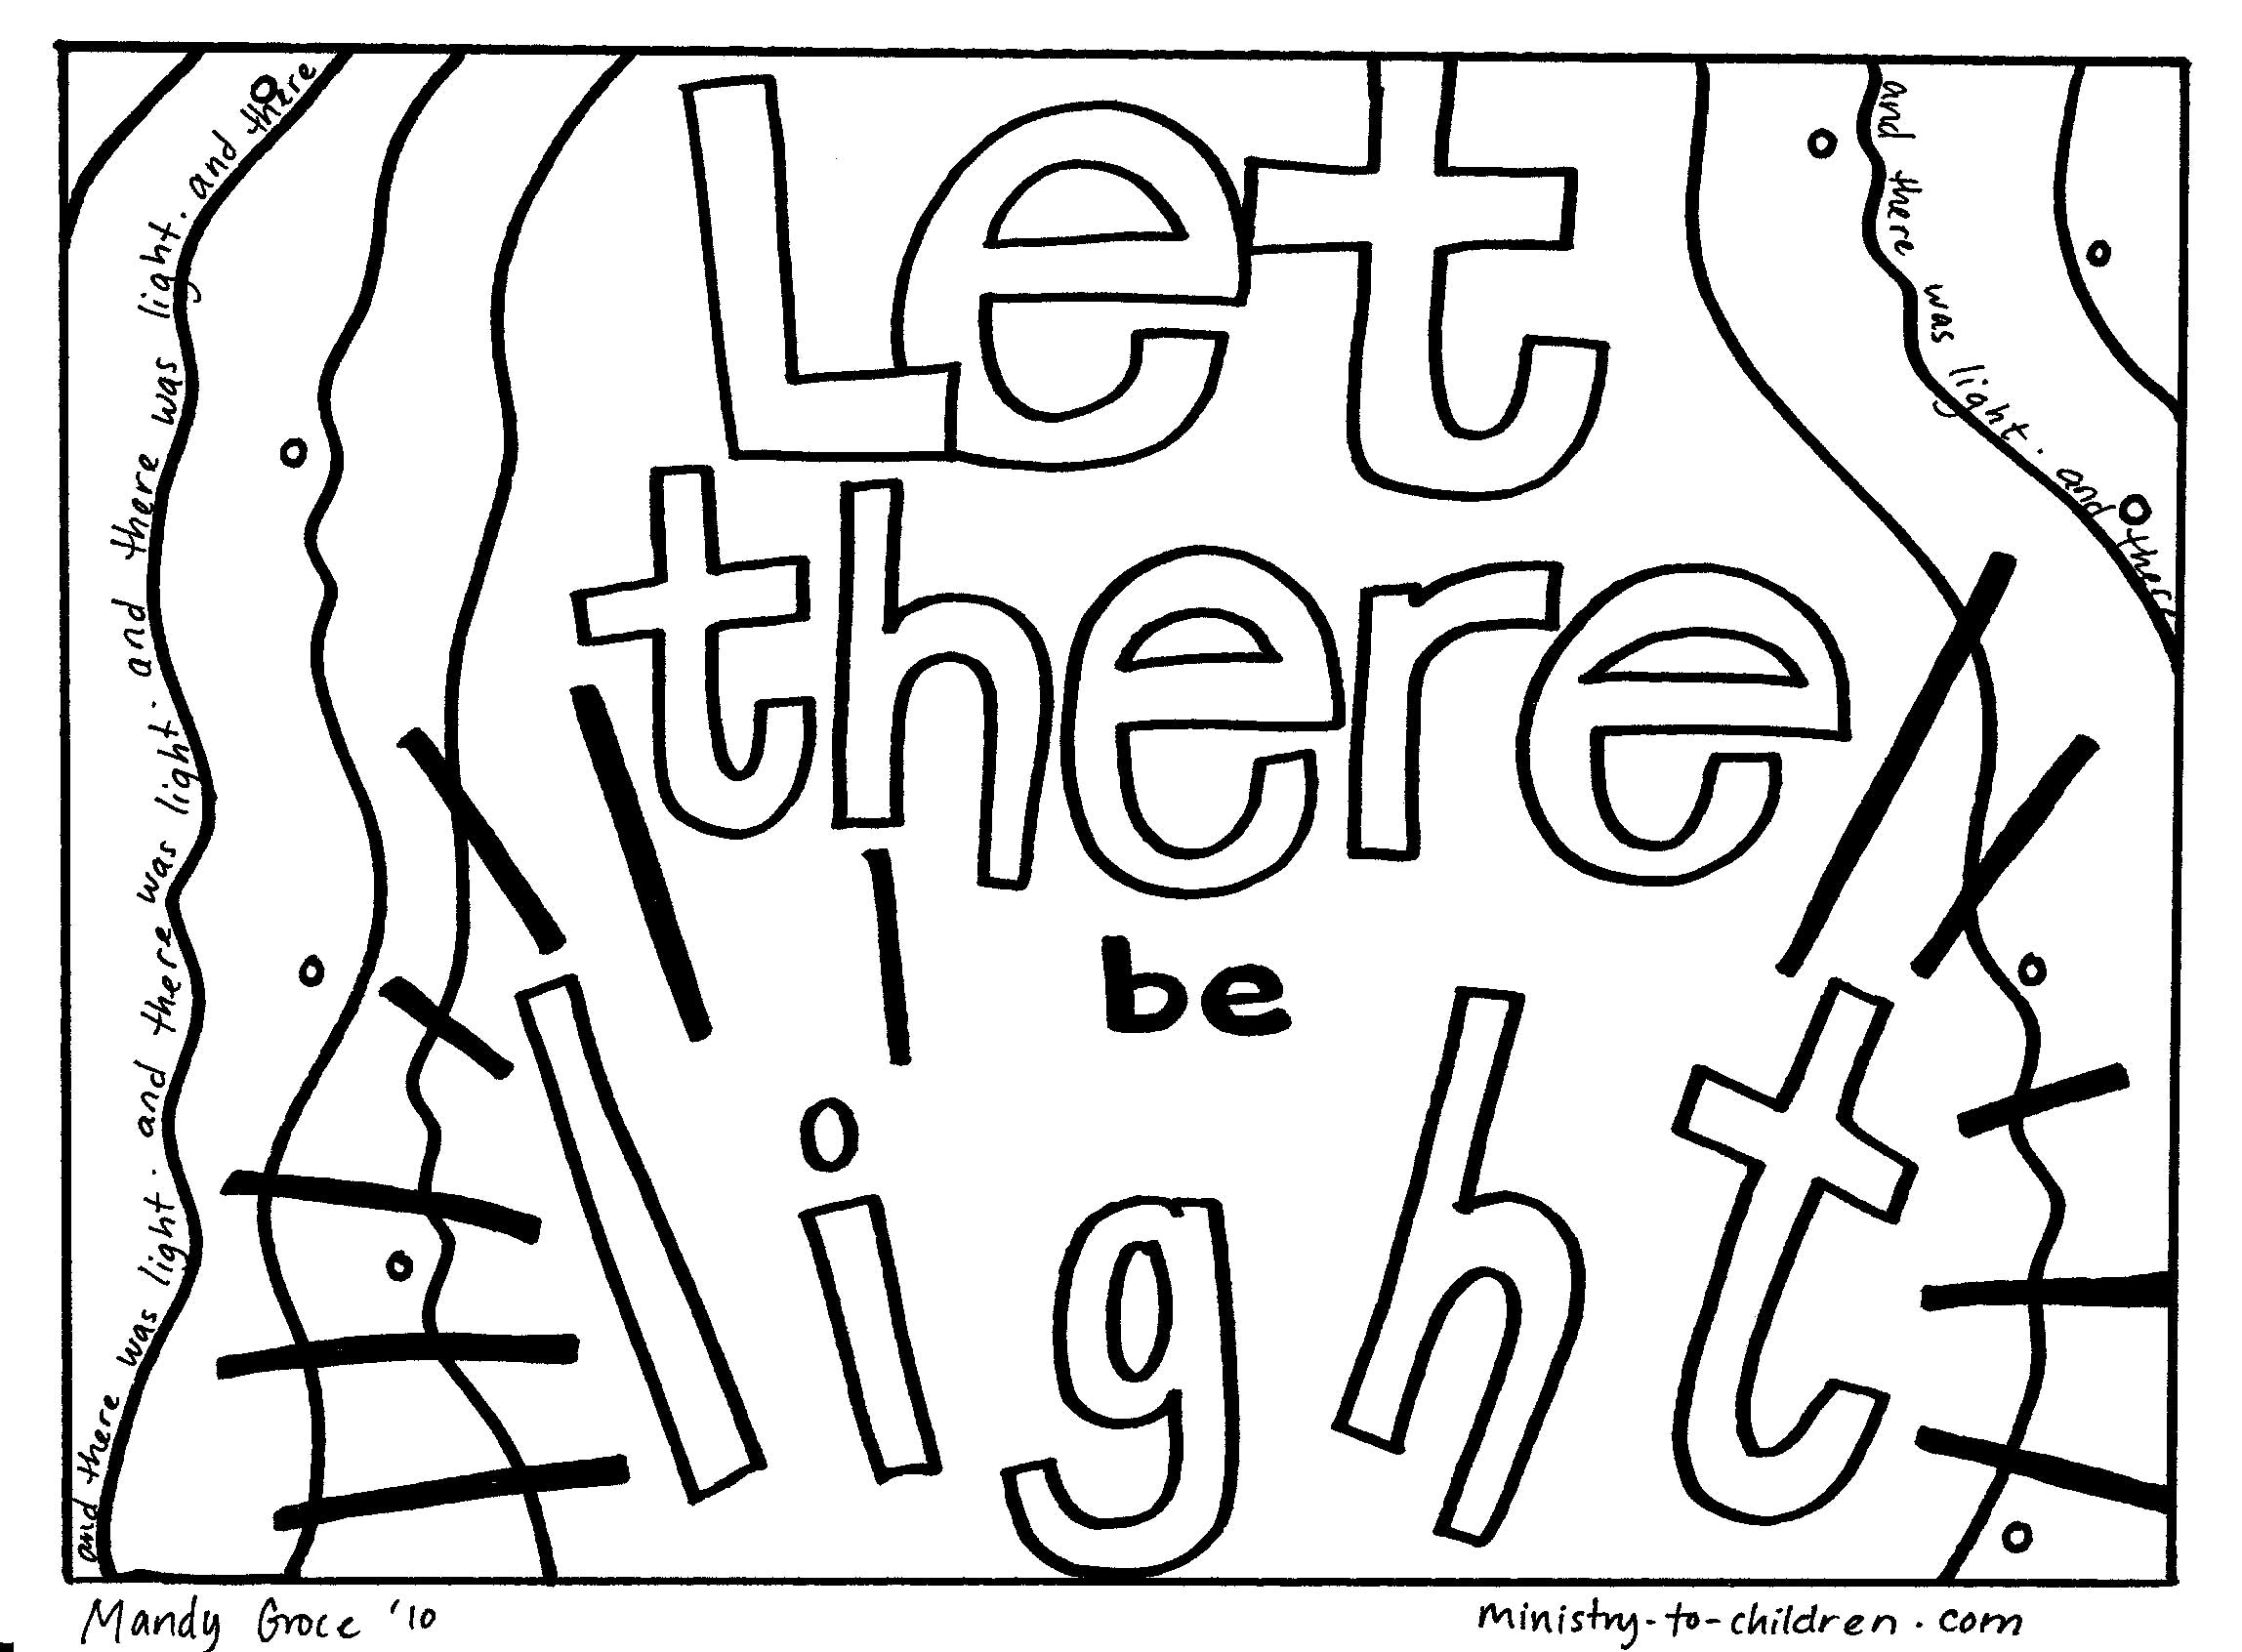 god created light coloring pages - photo#5